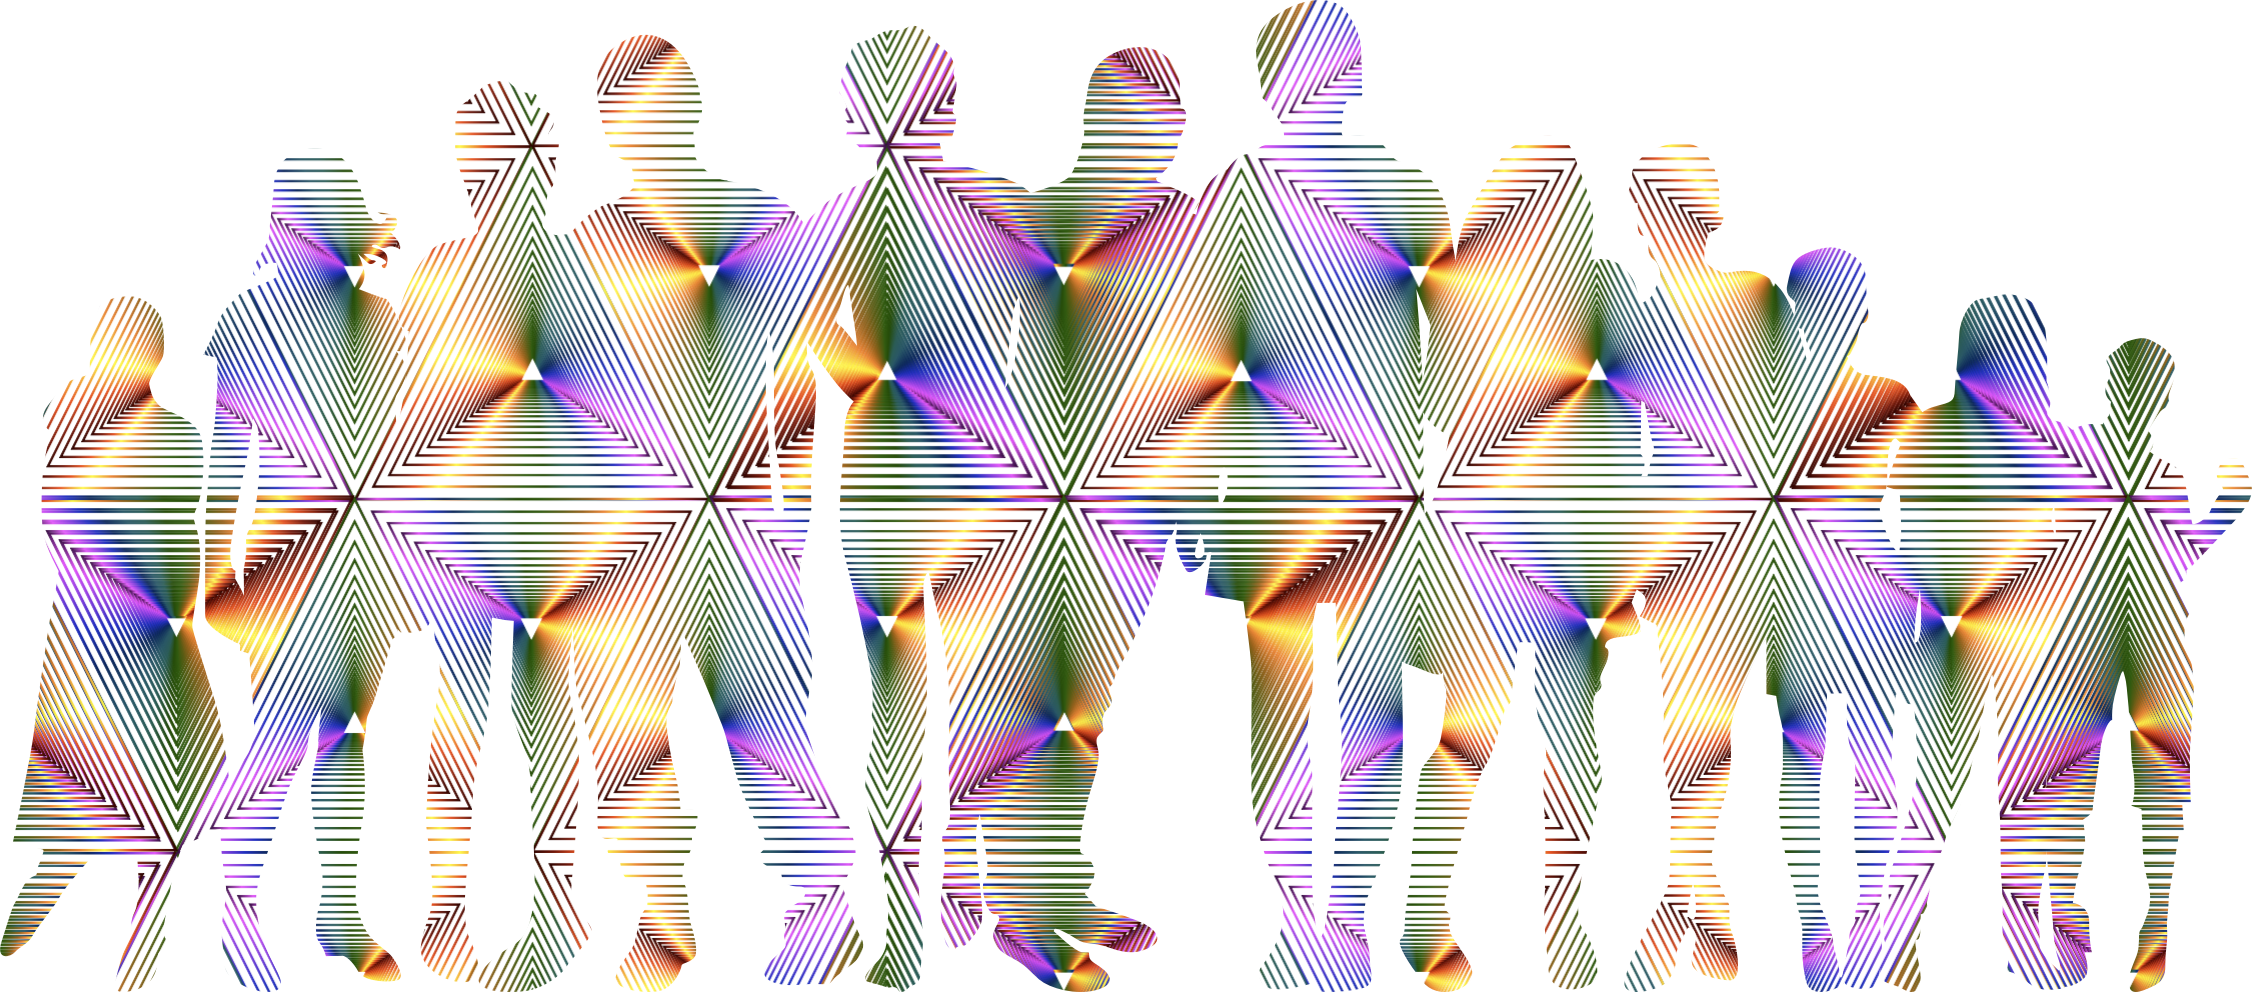 Prismatic Human Family No Background by GDJ